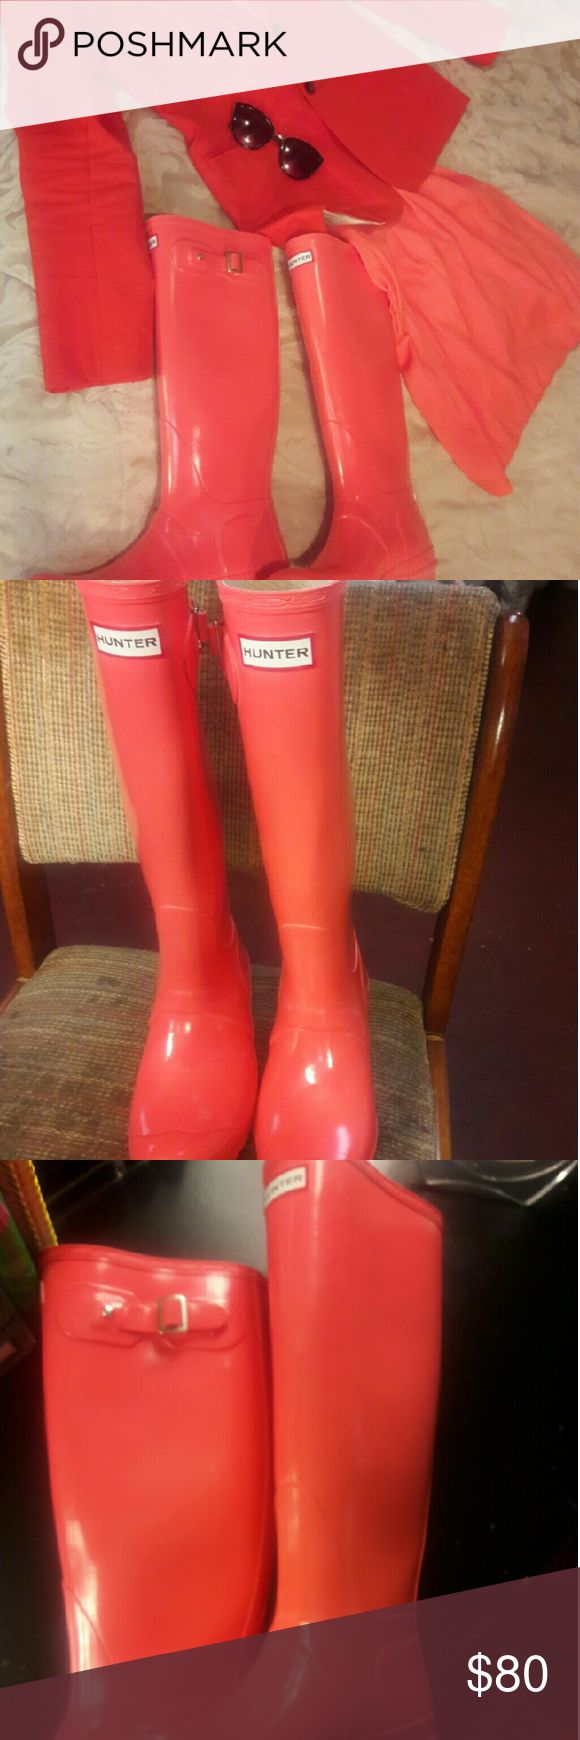 RARE Coral Hunter Boots Glossy , beautiful dark peach, orange- y, coral color. Not in oroginal box but not used. Very pretty!!! Hunter Boots Shoes Winter & Rain Boots